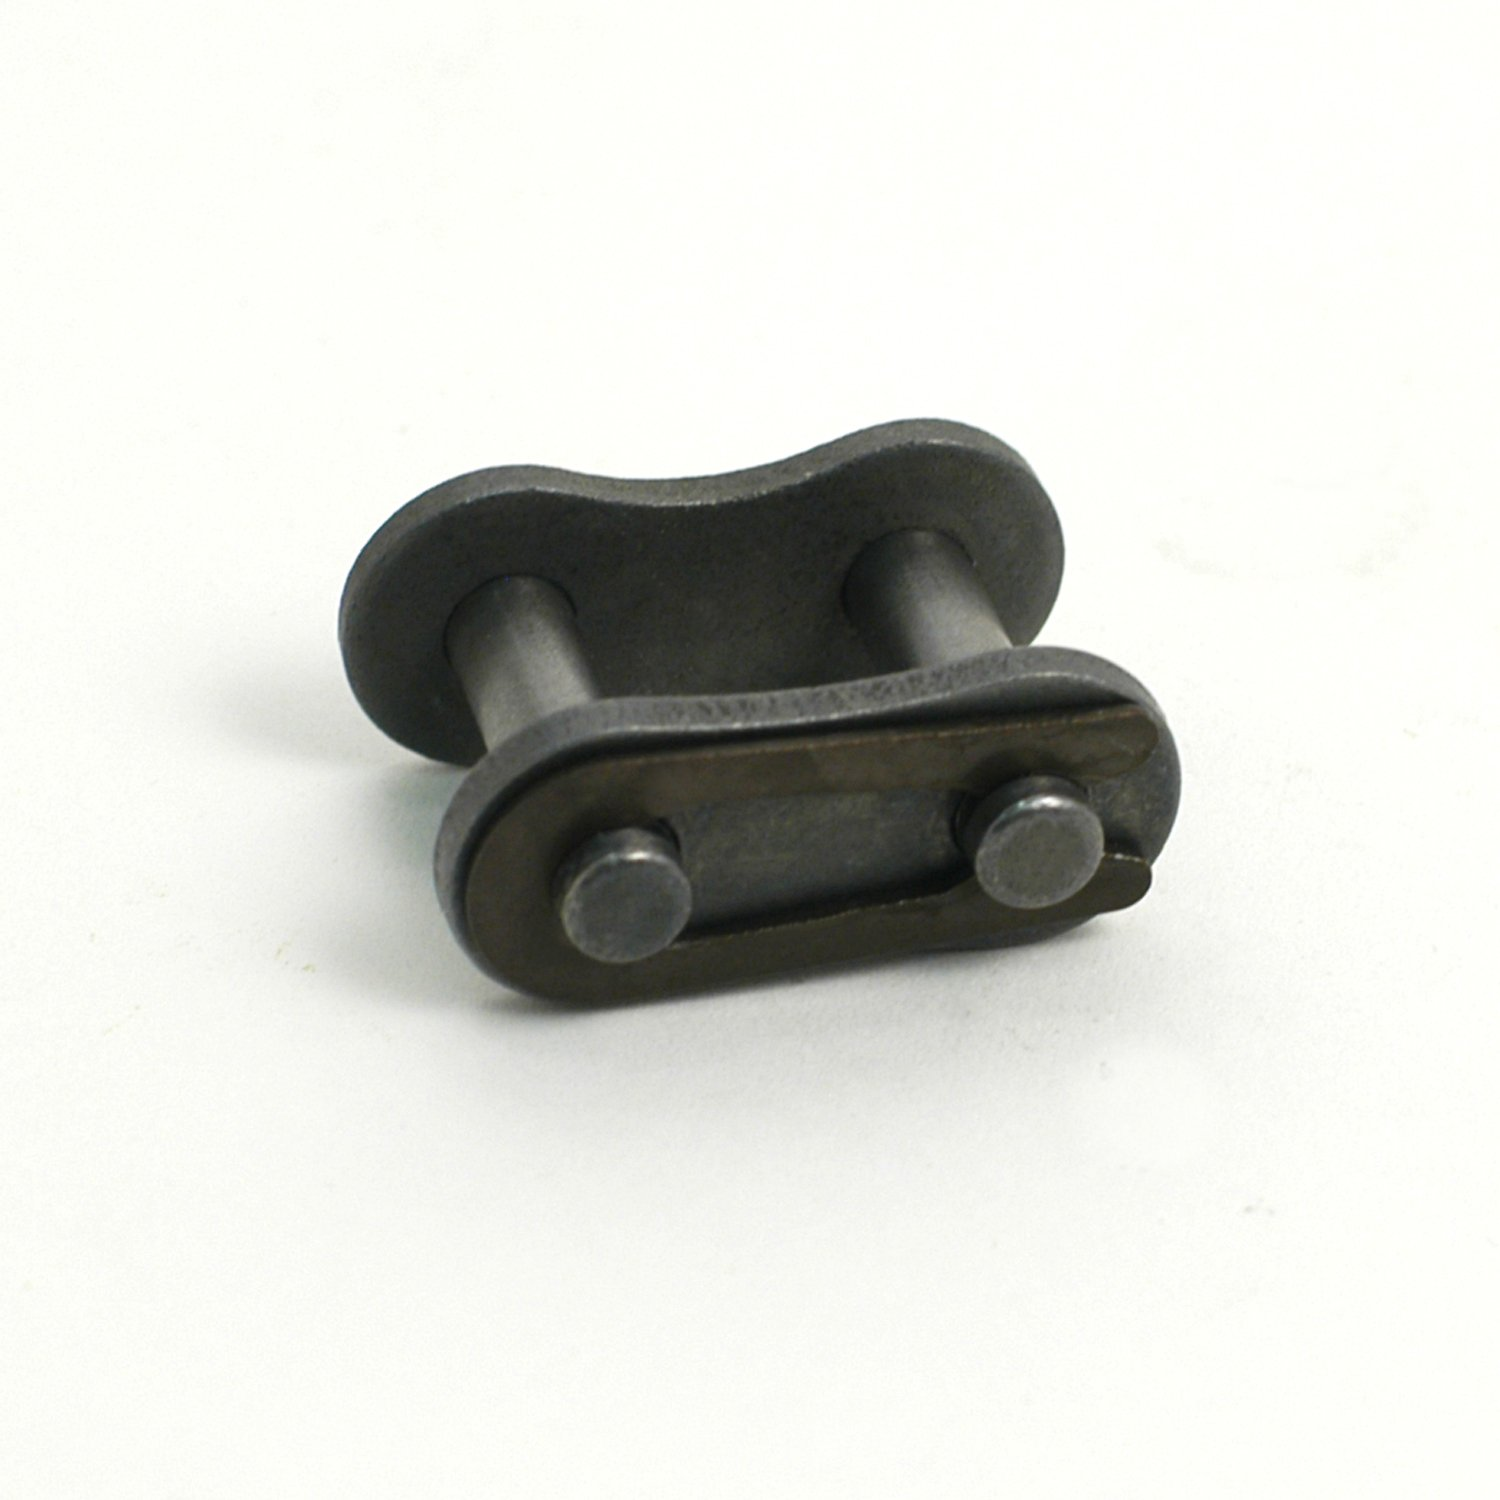 TRITAN 24B-1 CL Precision ISO (Metric) Roller Chain, Connecting Link, 63.5 mm Length, 38.1 mm Pitch